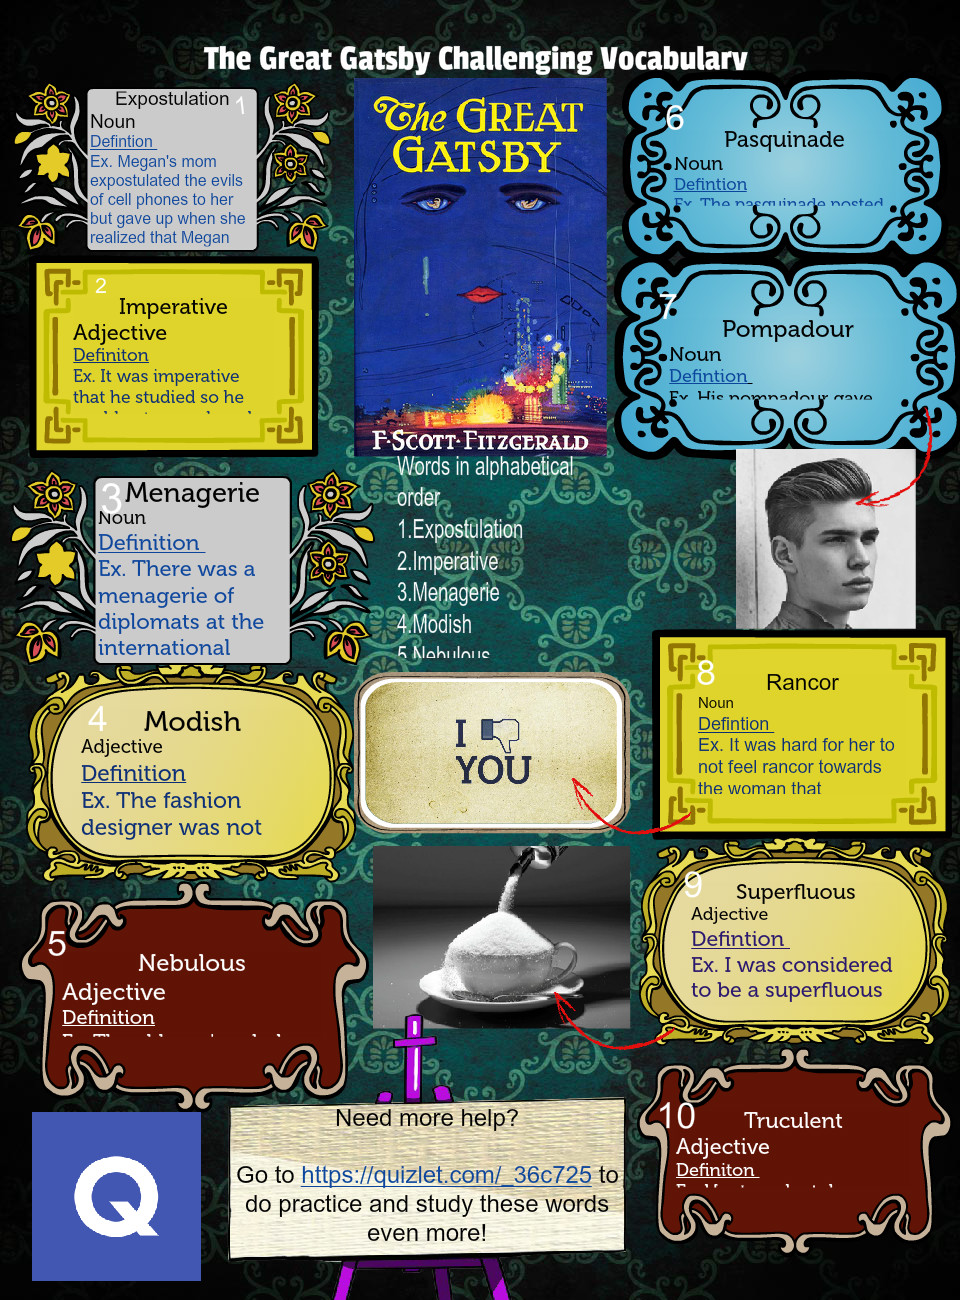 The Great Gatsby Vocabulary